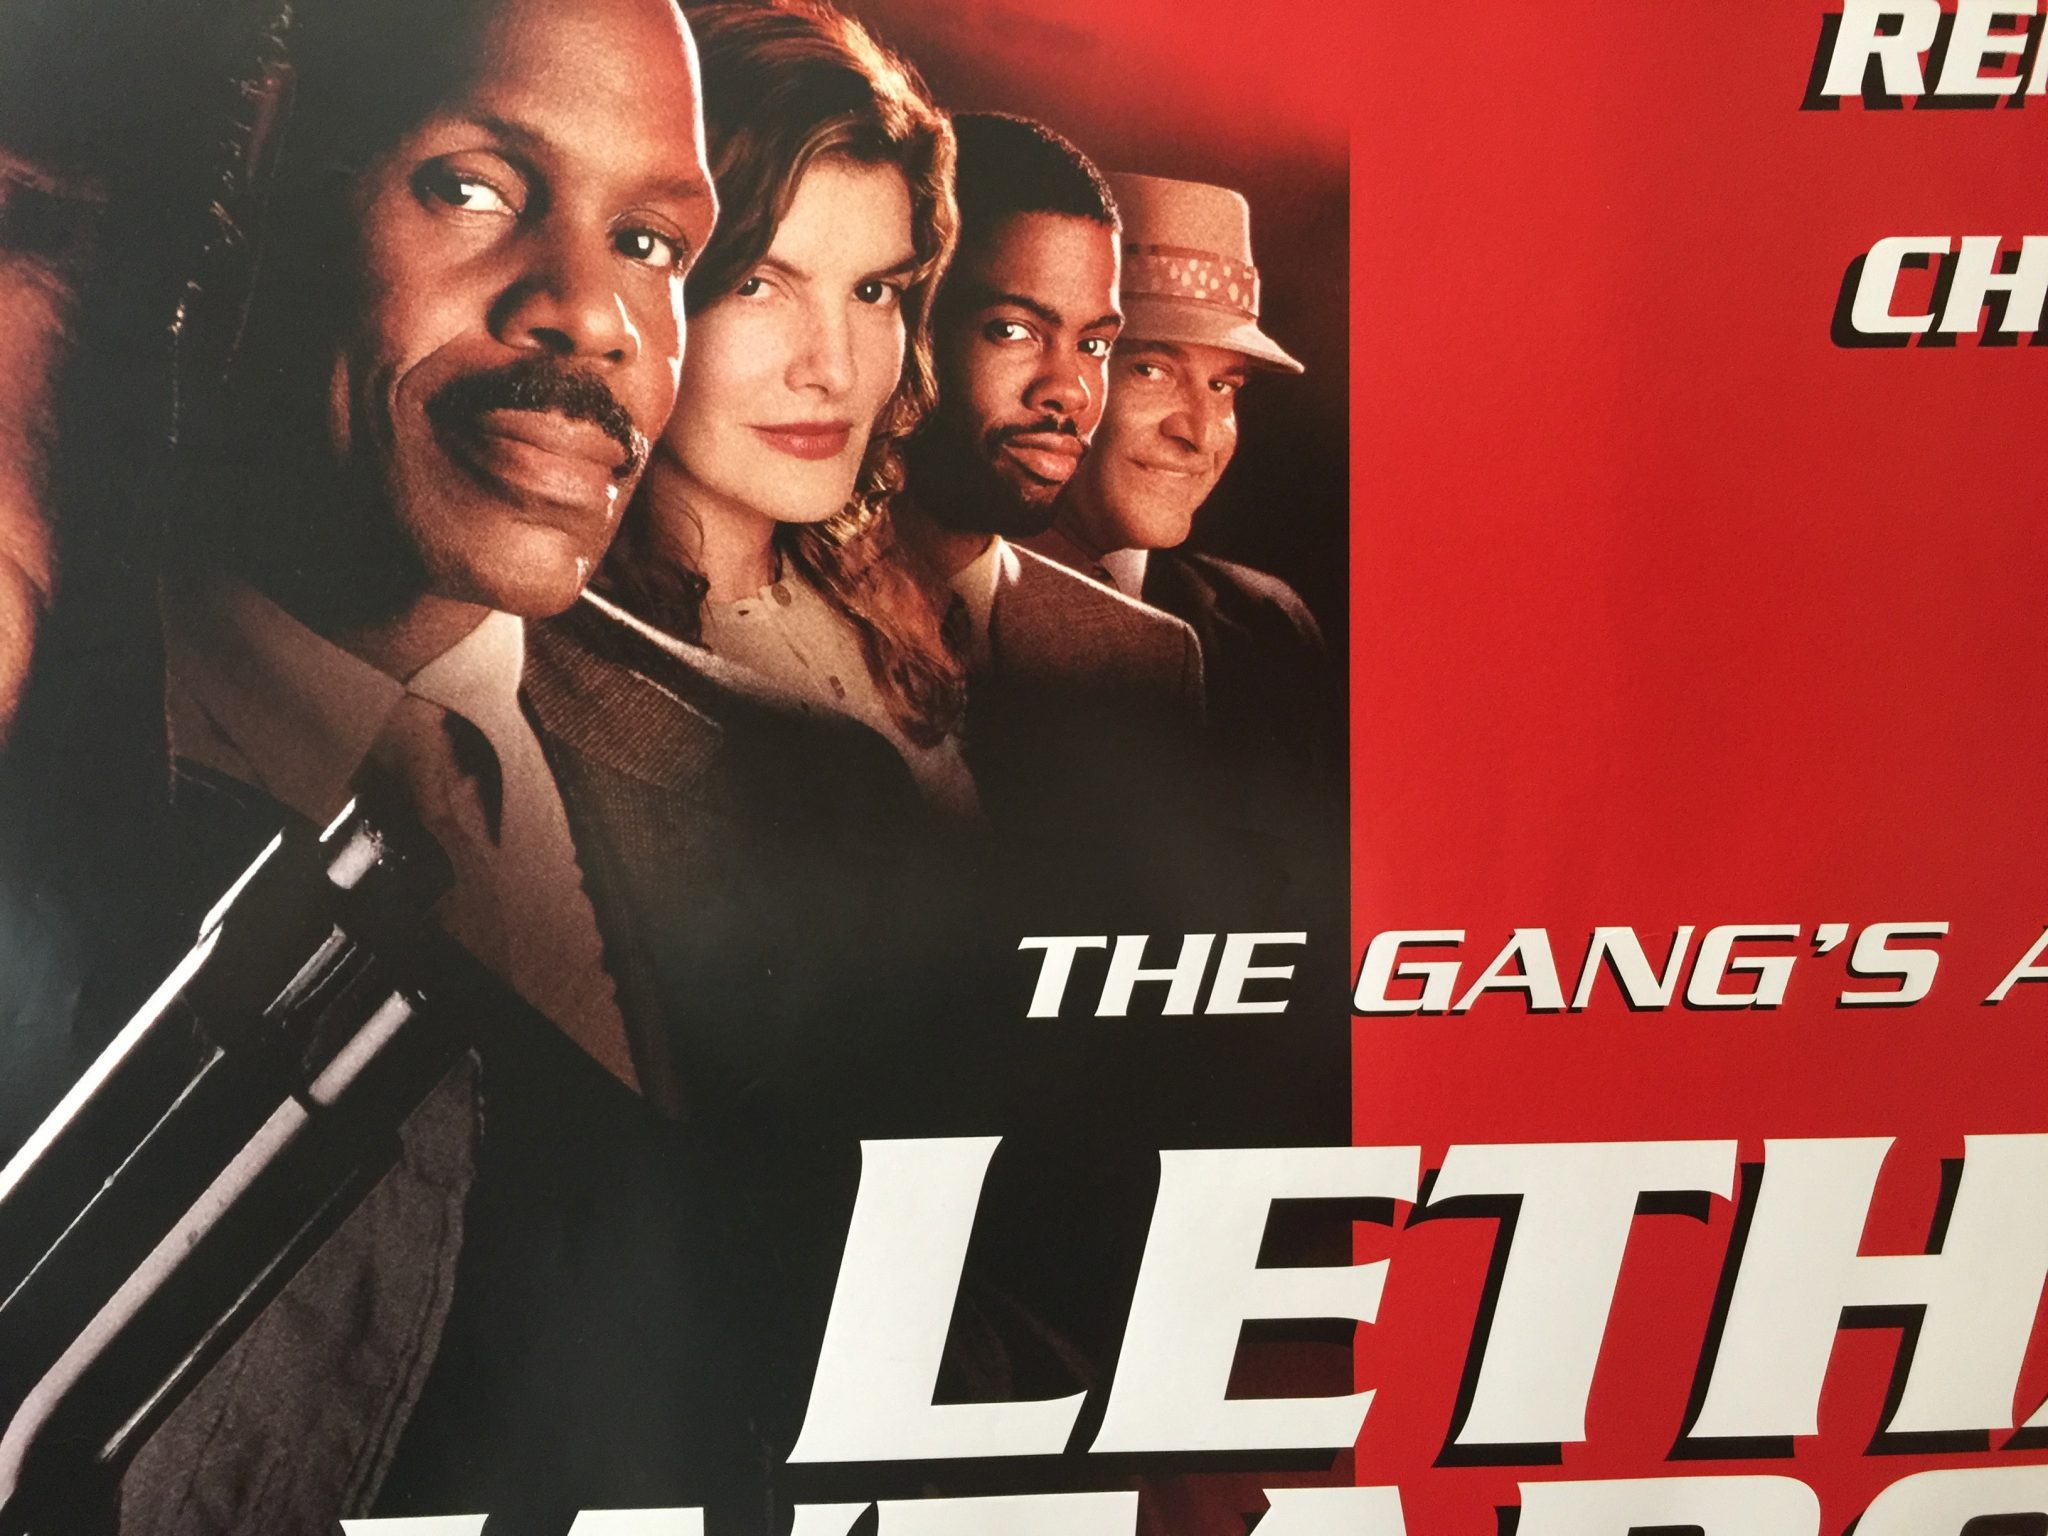 Lethal Weapon 4 Uk Quad Lethal Weapon 4 1998 Movie 1685962 Hd Wallpaper Backgrounds Download